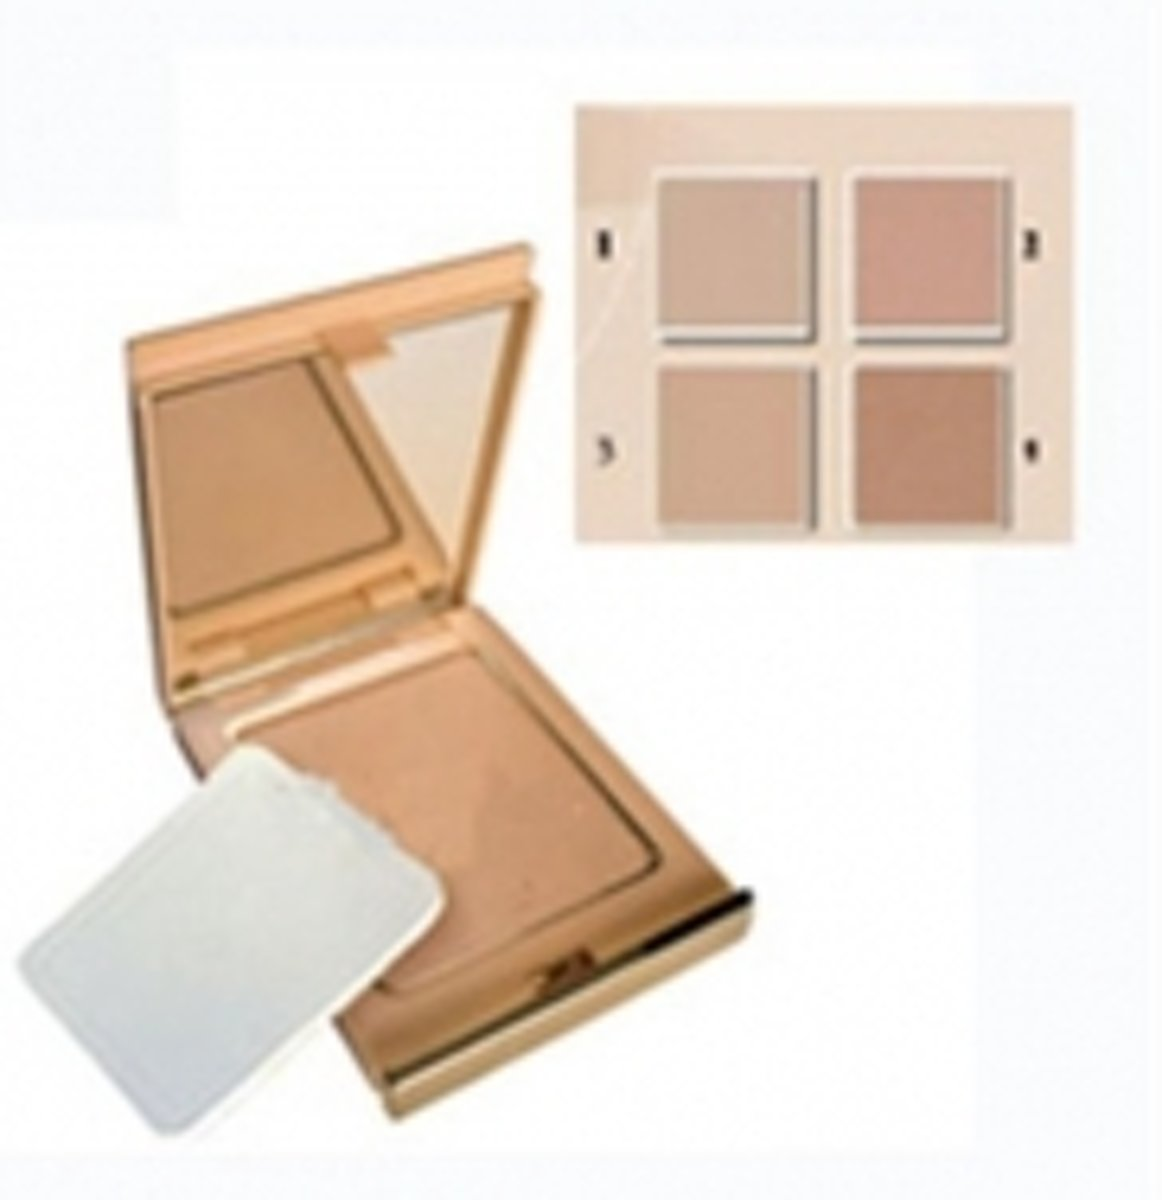 Coverderm - Compact Powder waterproof - 3 Normal skin